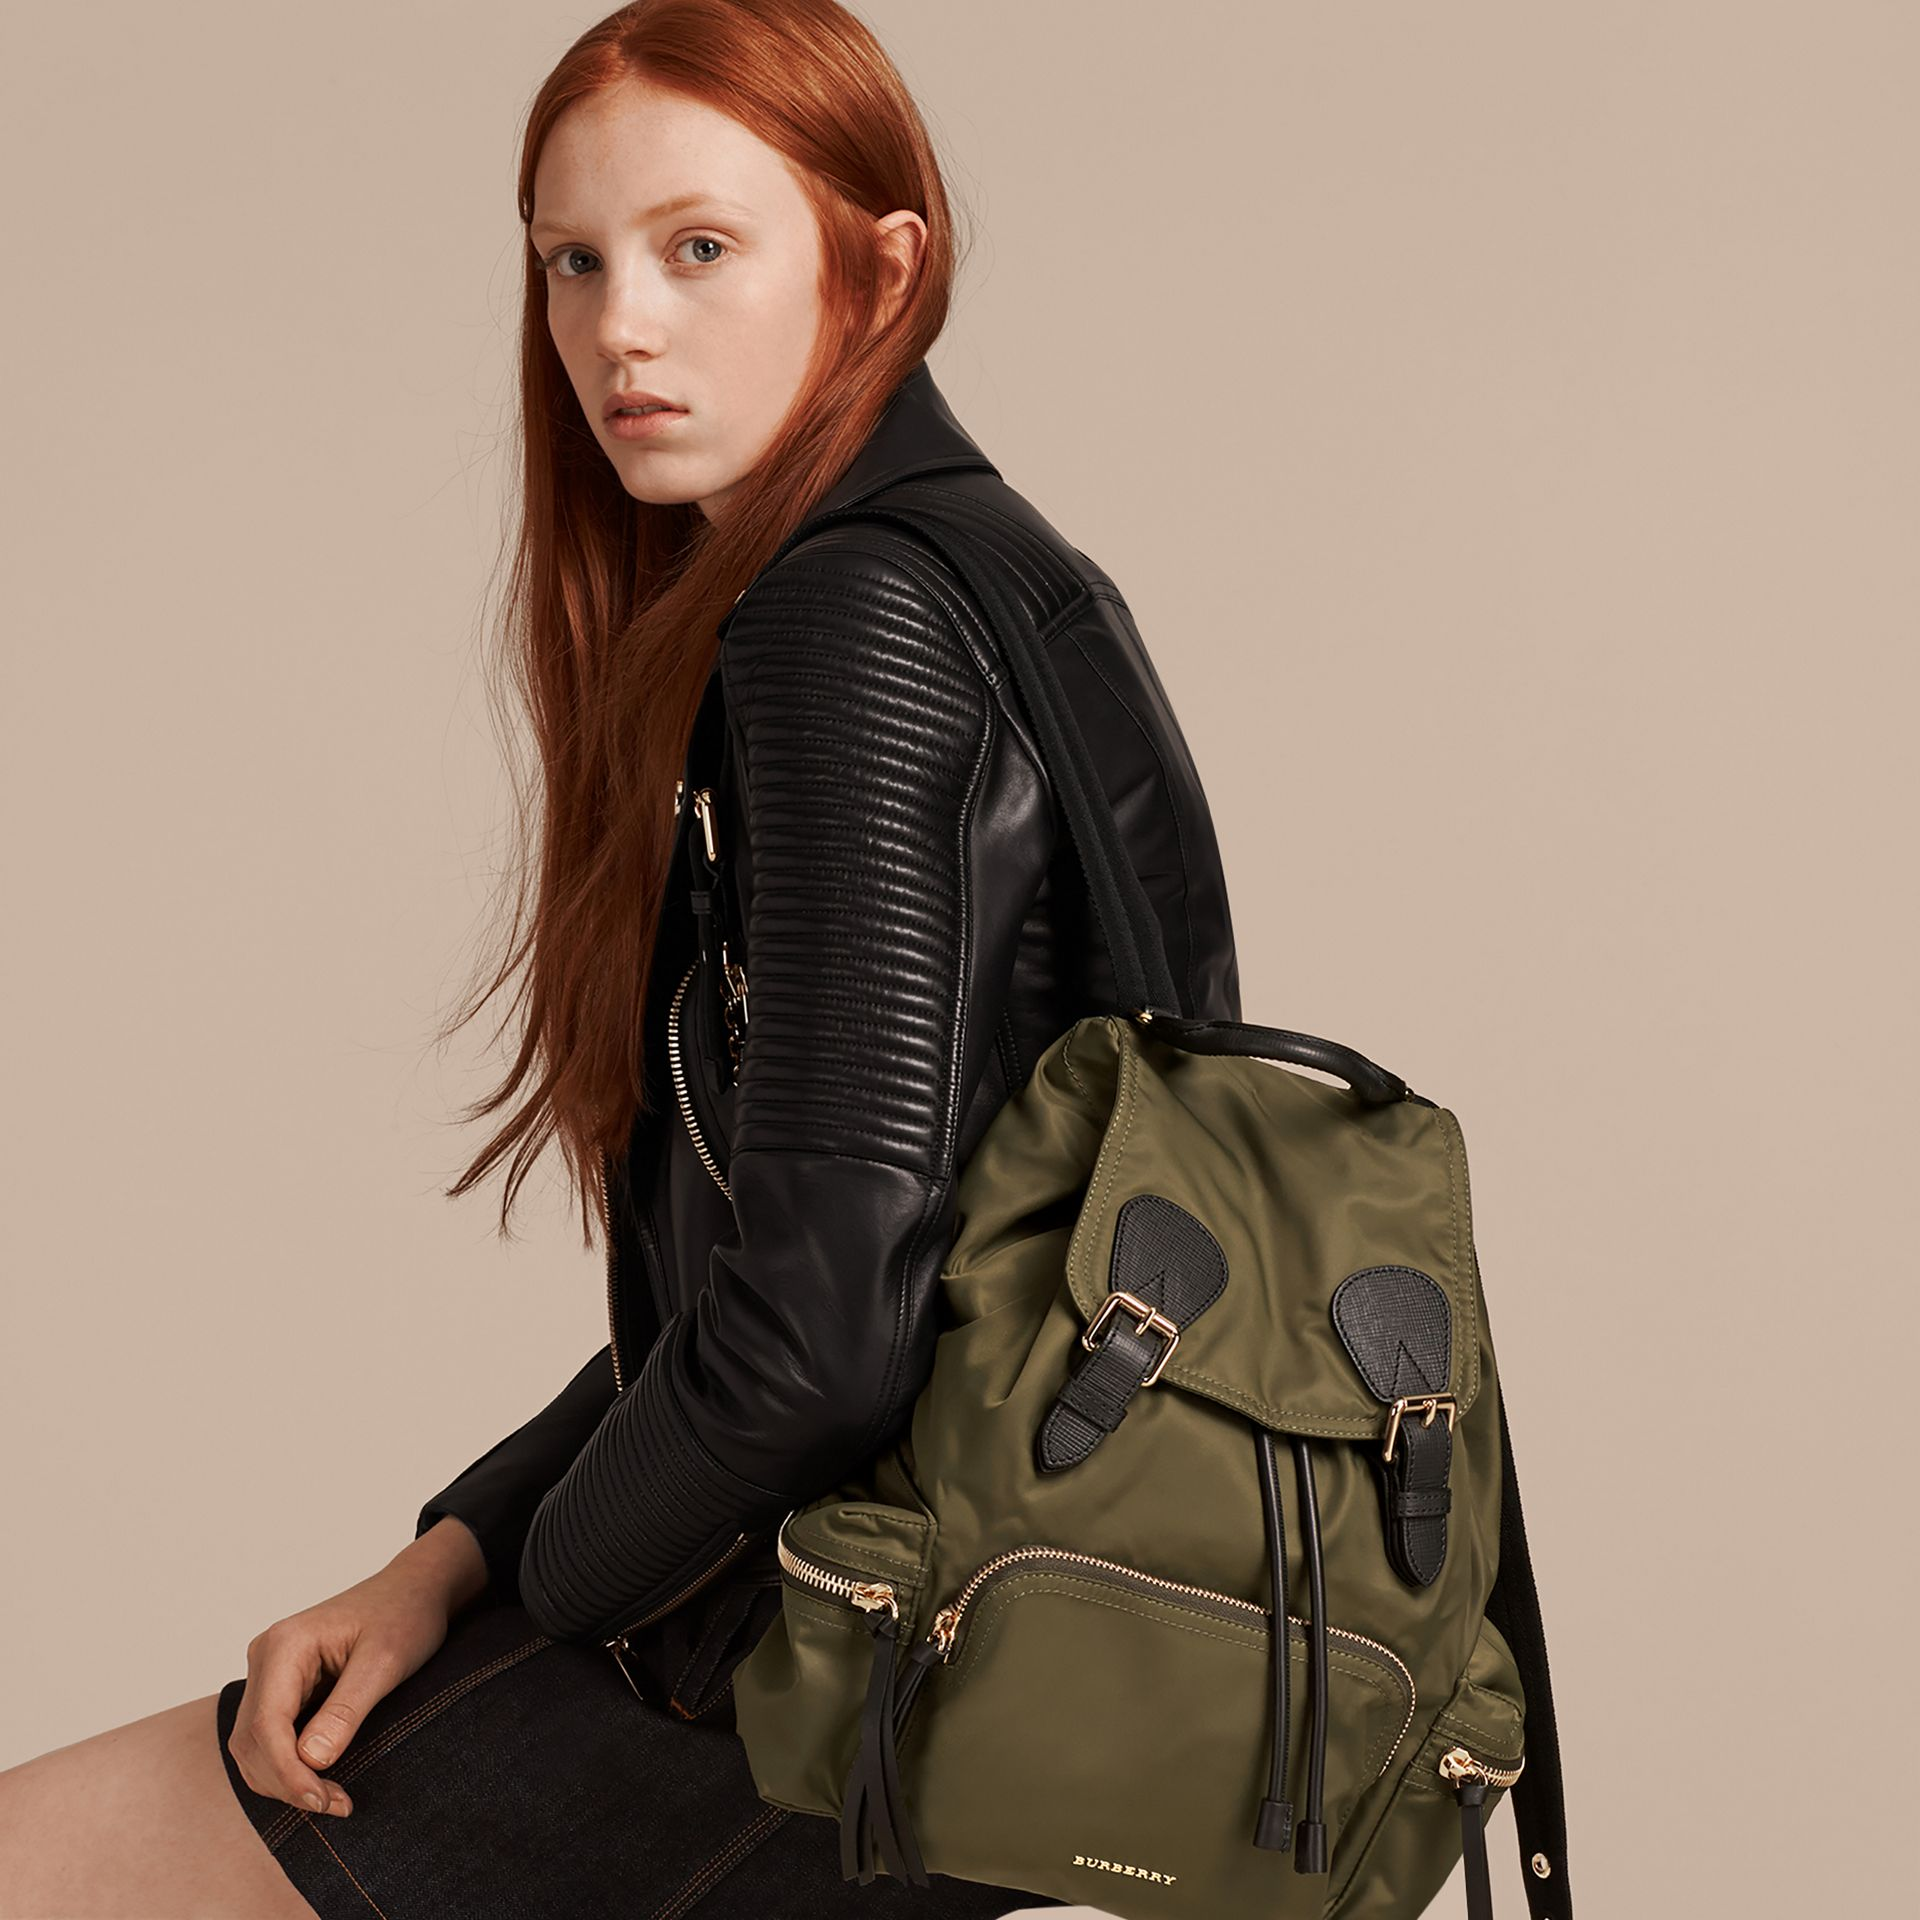 Sac The Rucksack medium en nylon technique et cuir (Vert Toile) - Femme | Burberry - photo de la galerie 4